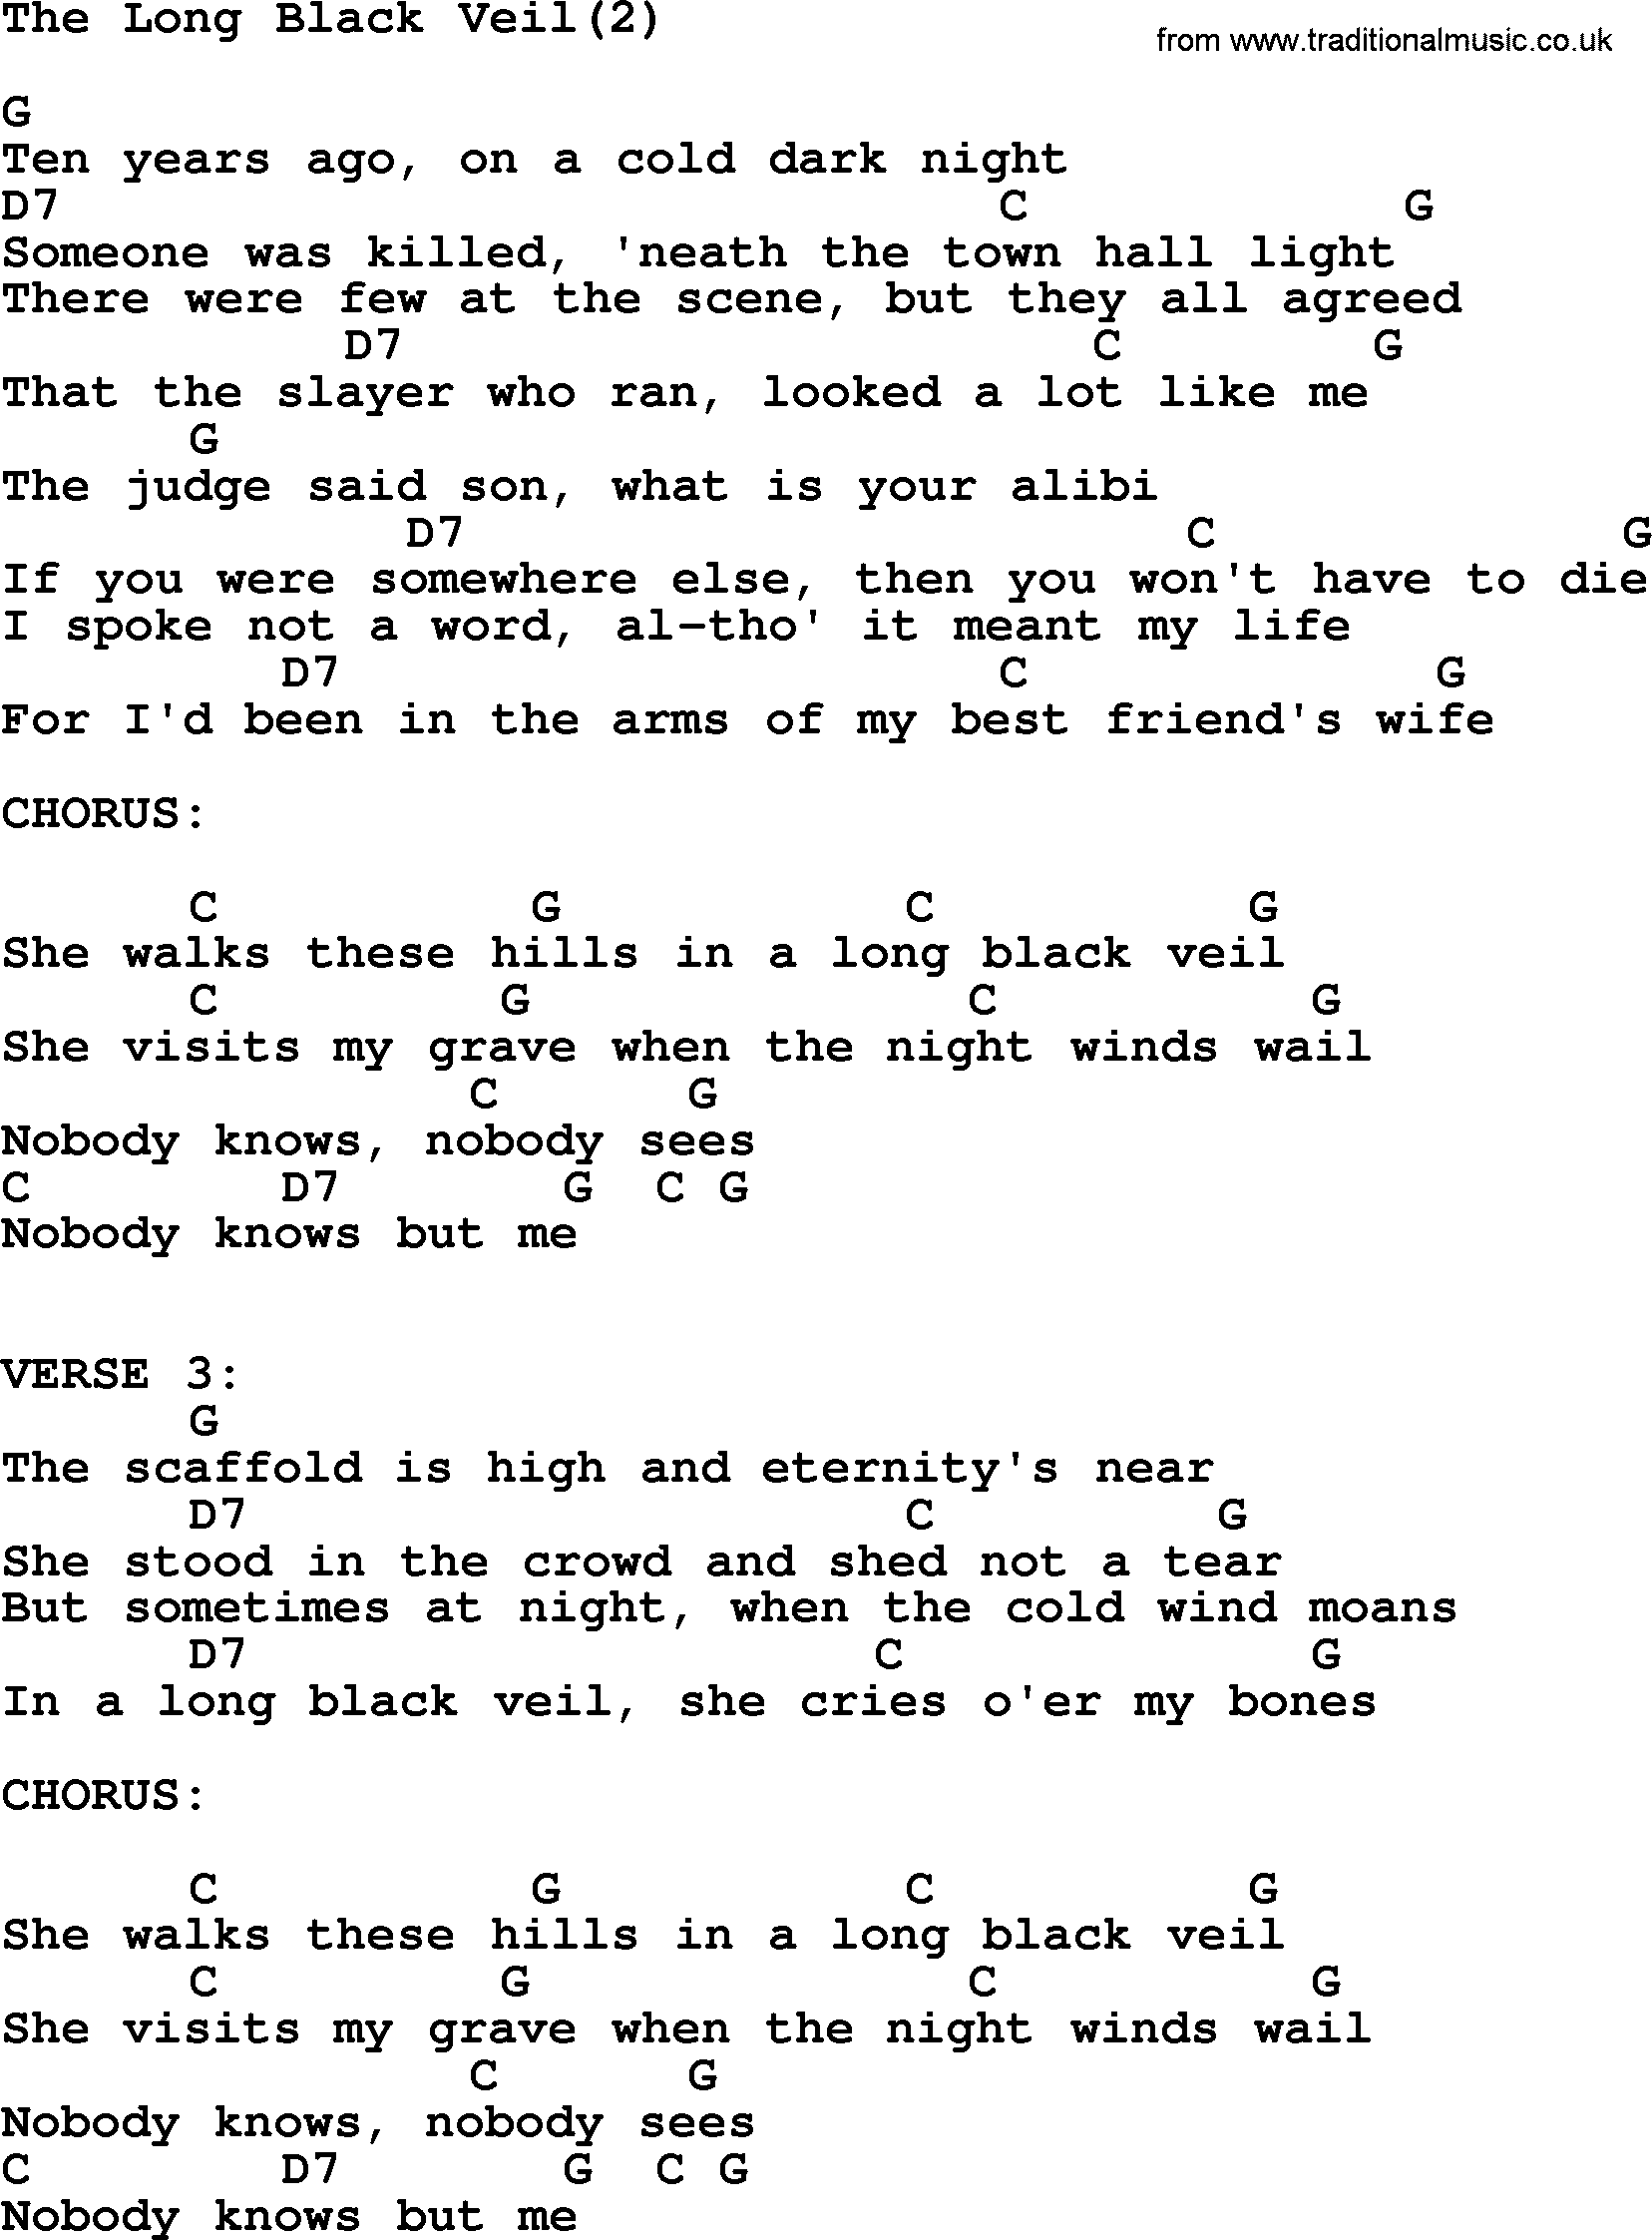 Johnny Cash Song The Long Black Veil2 Lyrics And Chords